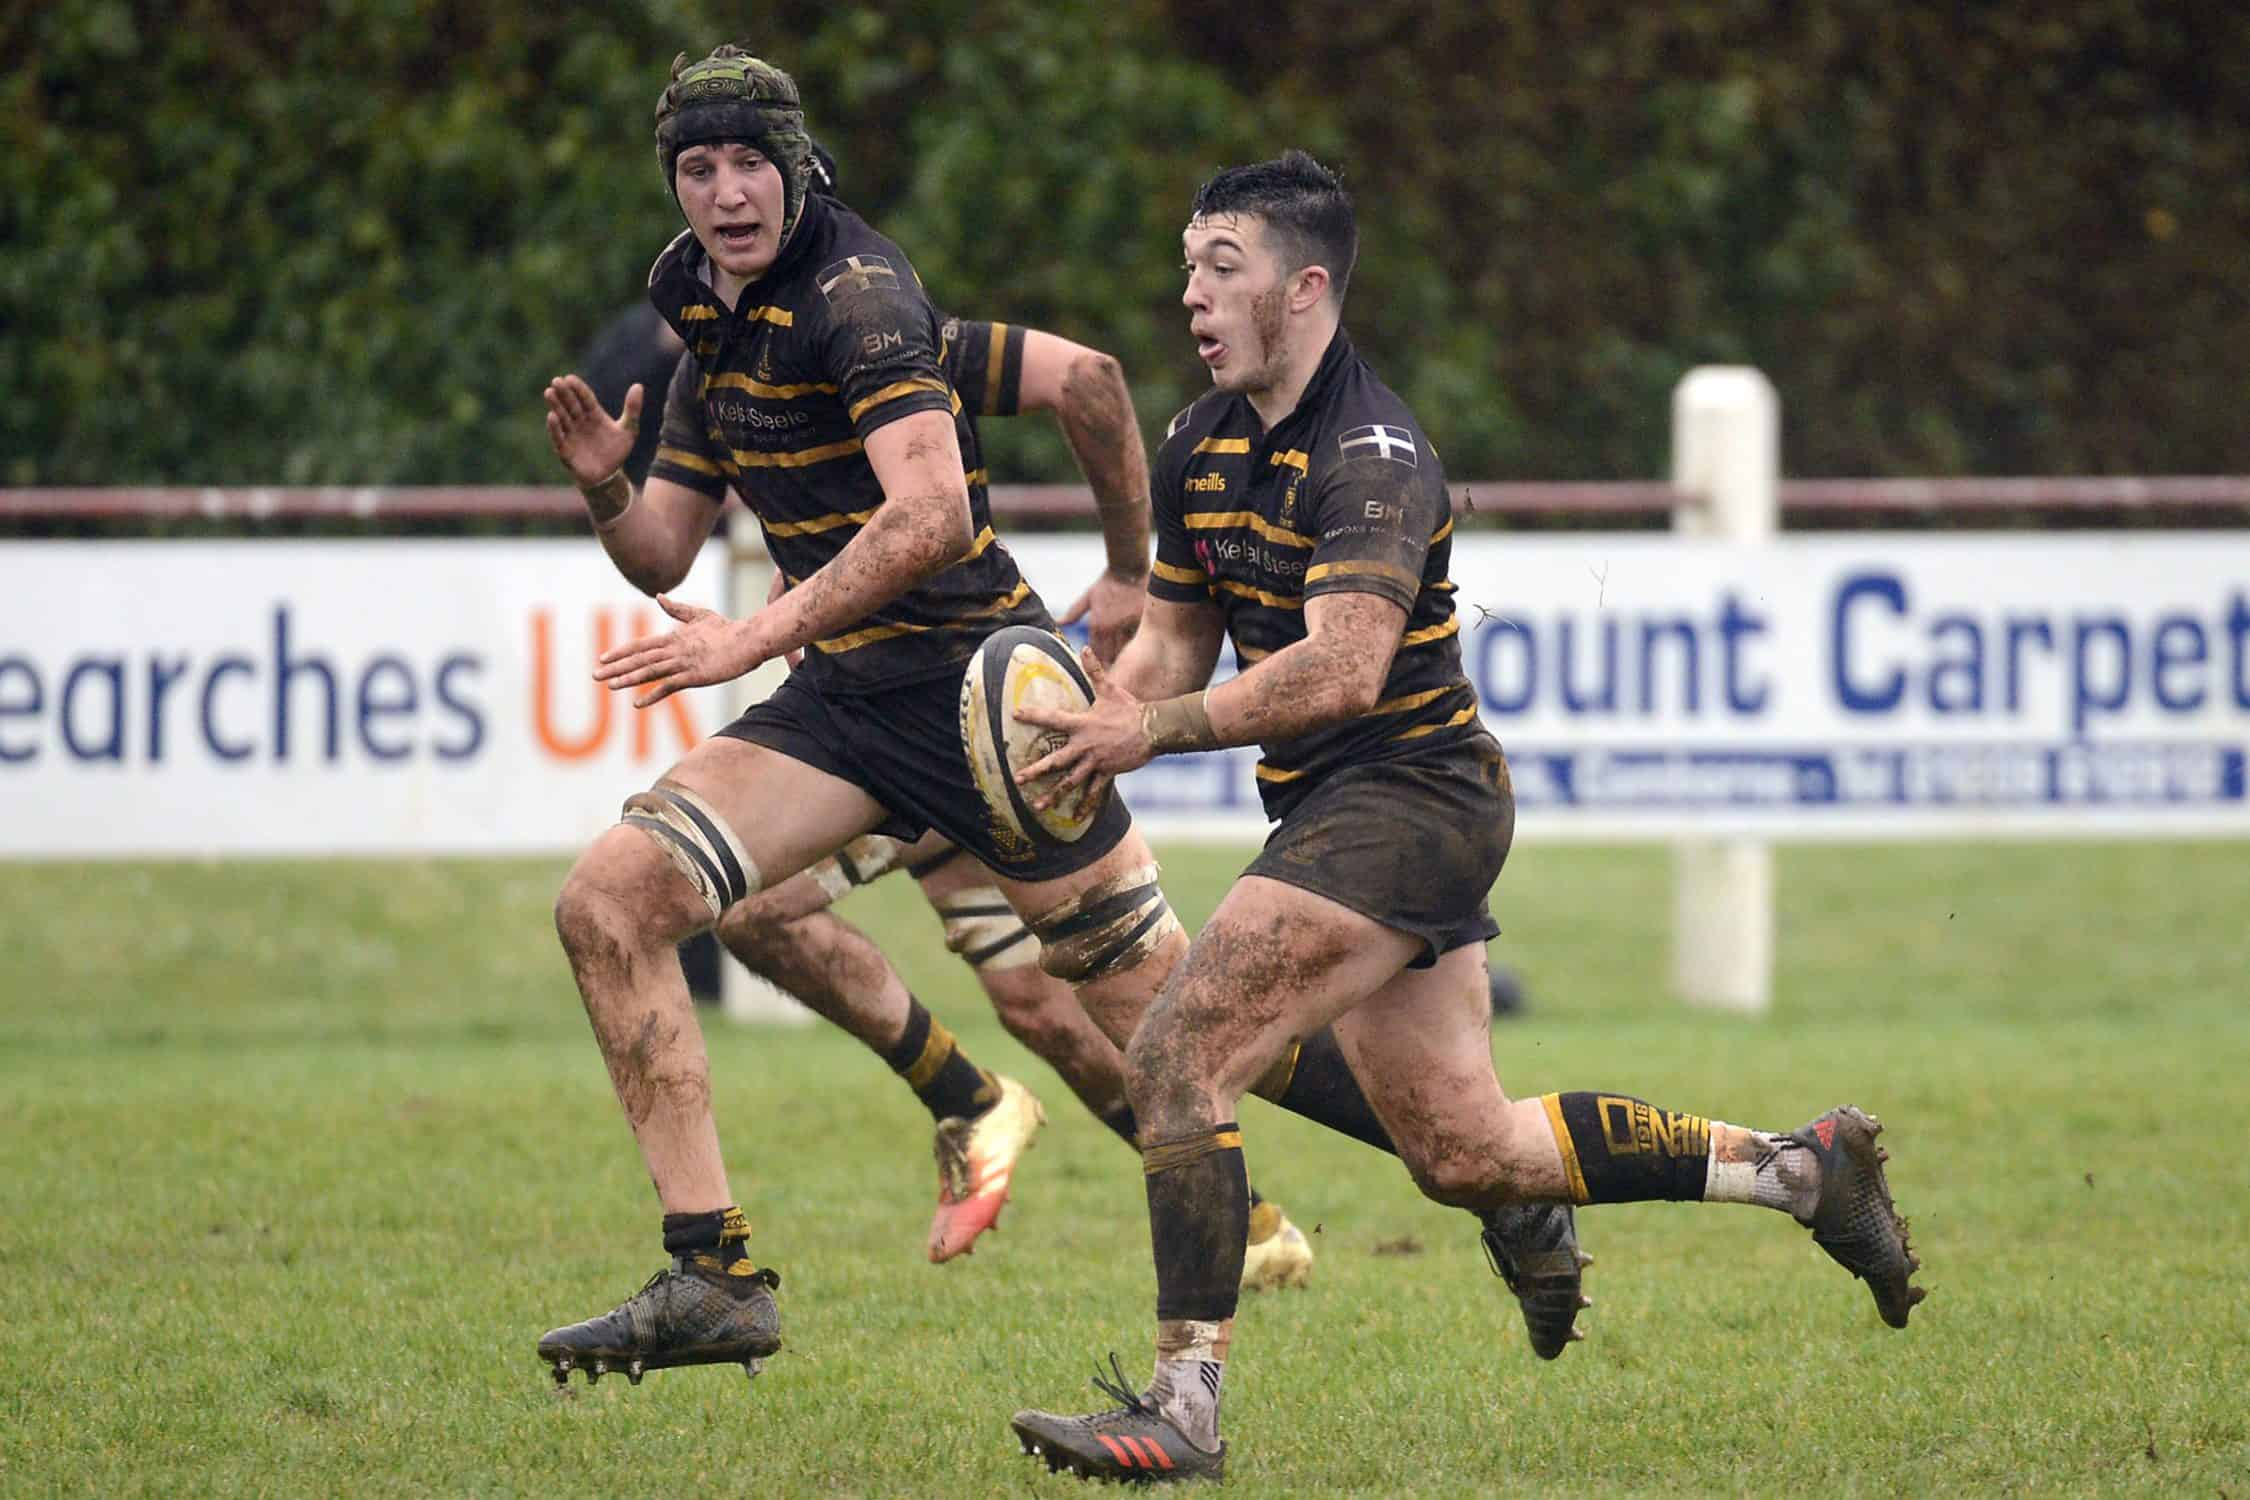 Cornwall U20s v Berkshire U20s, Camborne UK – 23 February 2020